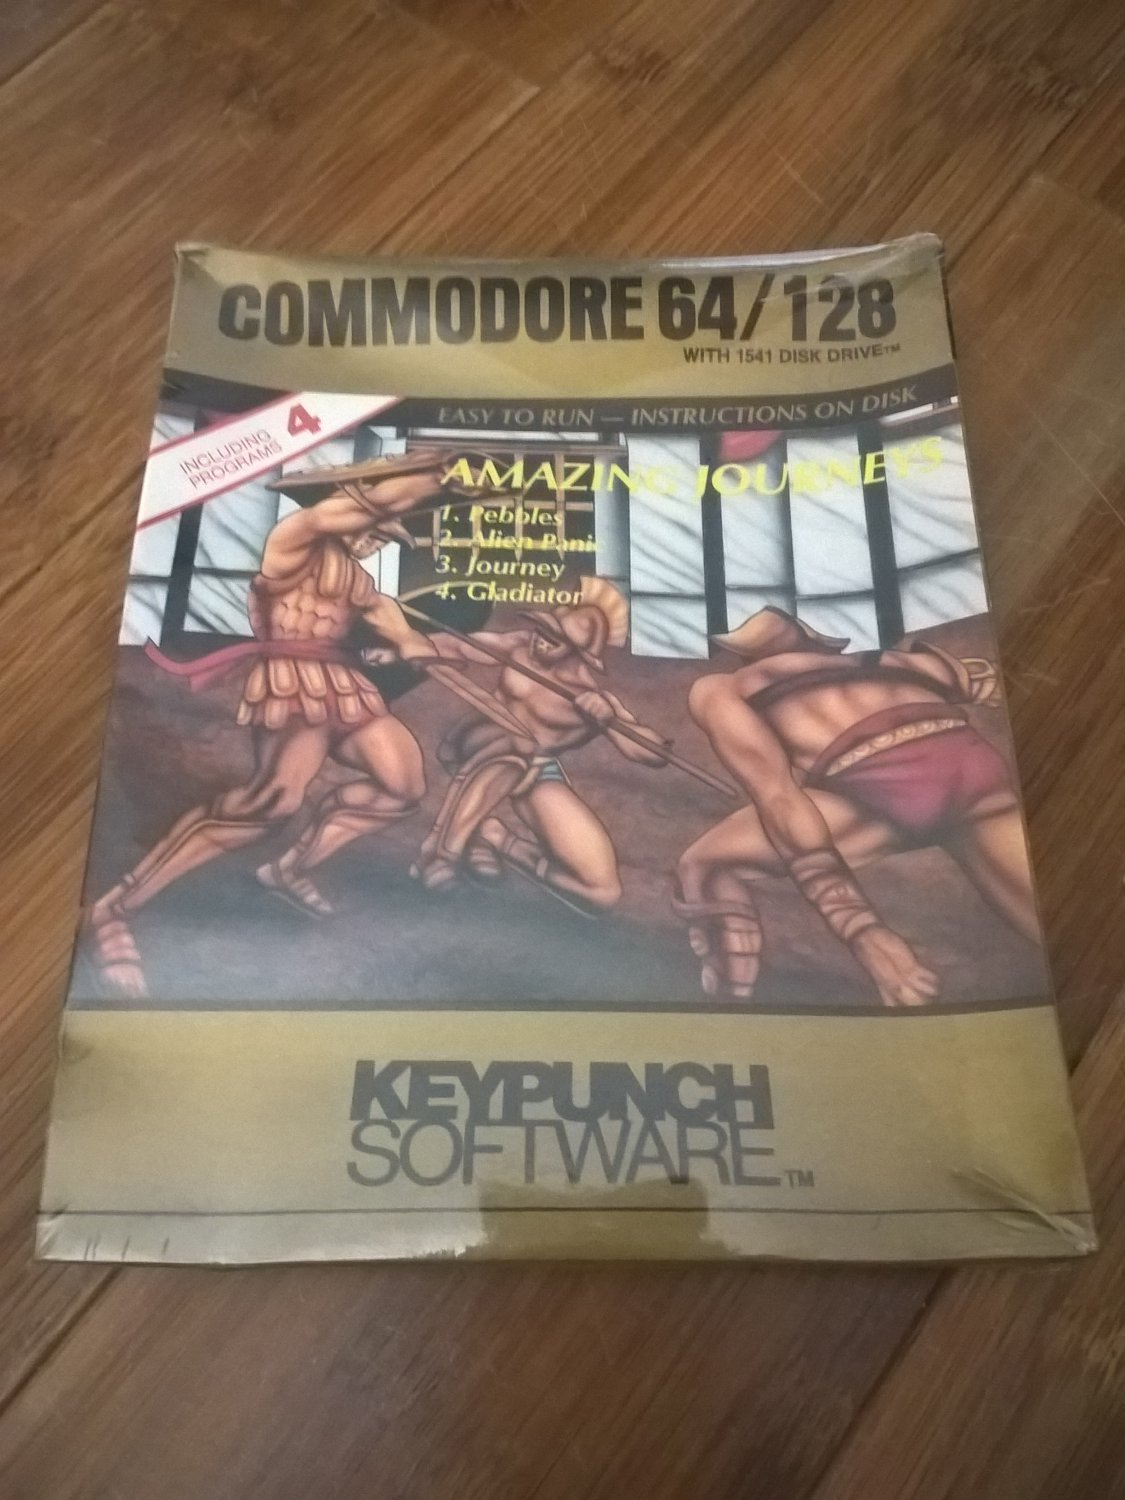 Amazing Journeys For Commodore 64/128, NEW FACTORY SEALED, Keypunch